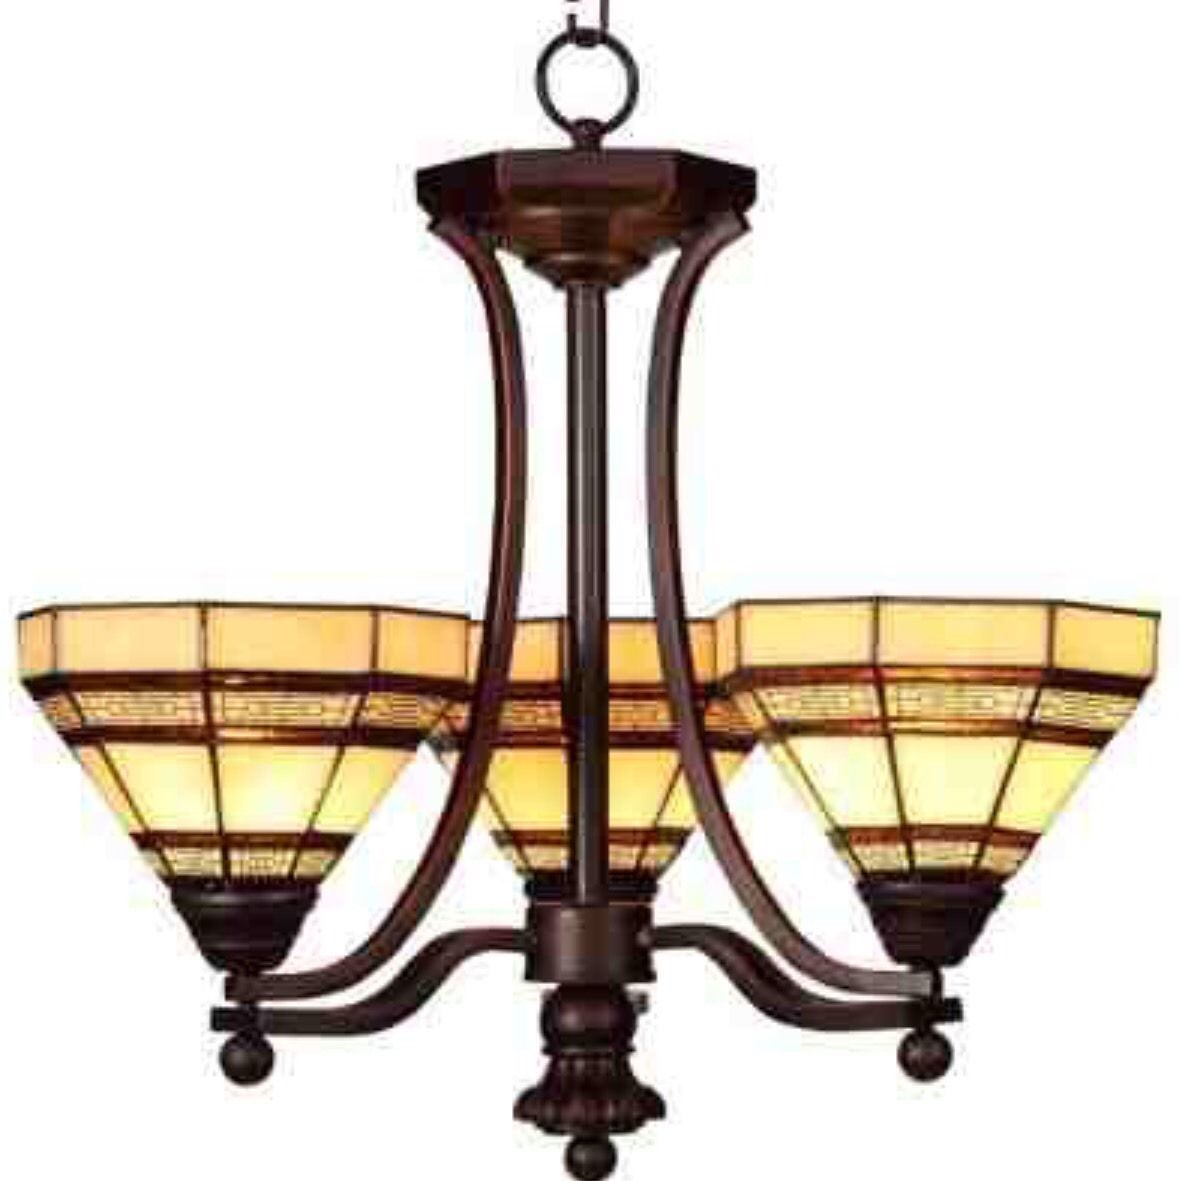 Hampton bay chandelier 8 listings hampton bay addison 3 light oil rubbed bronze chandelier 12436 aloadofball Choice Image